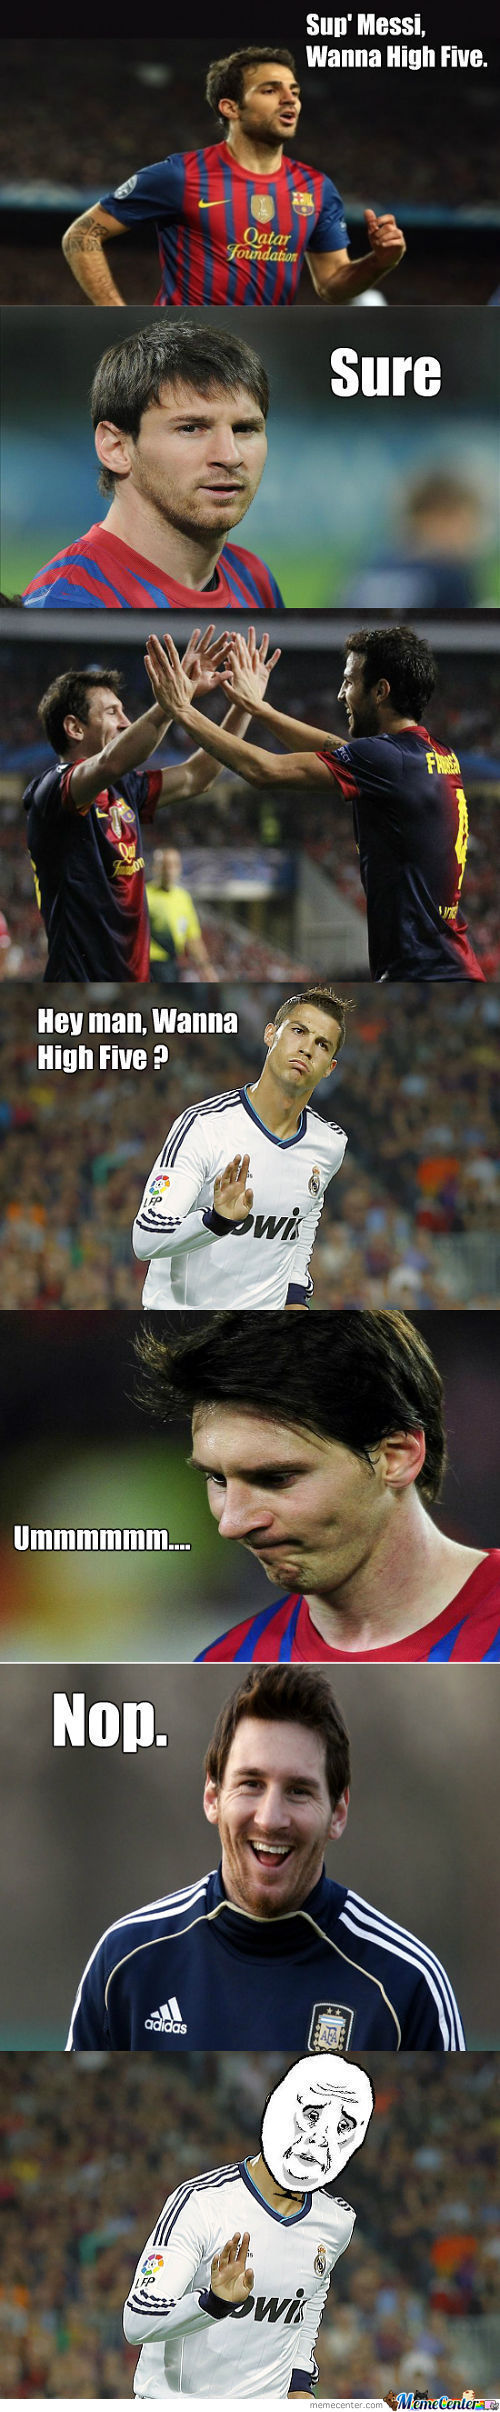 No High Five For You.